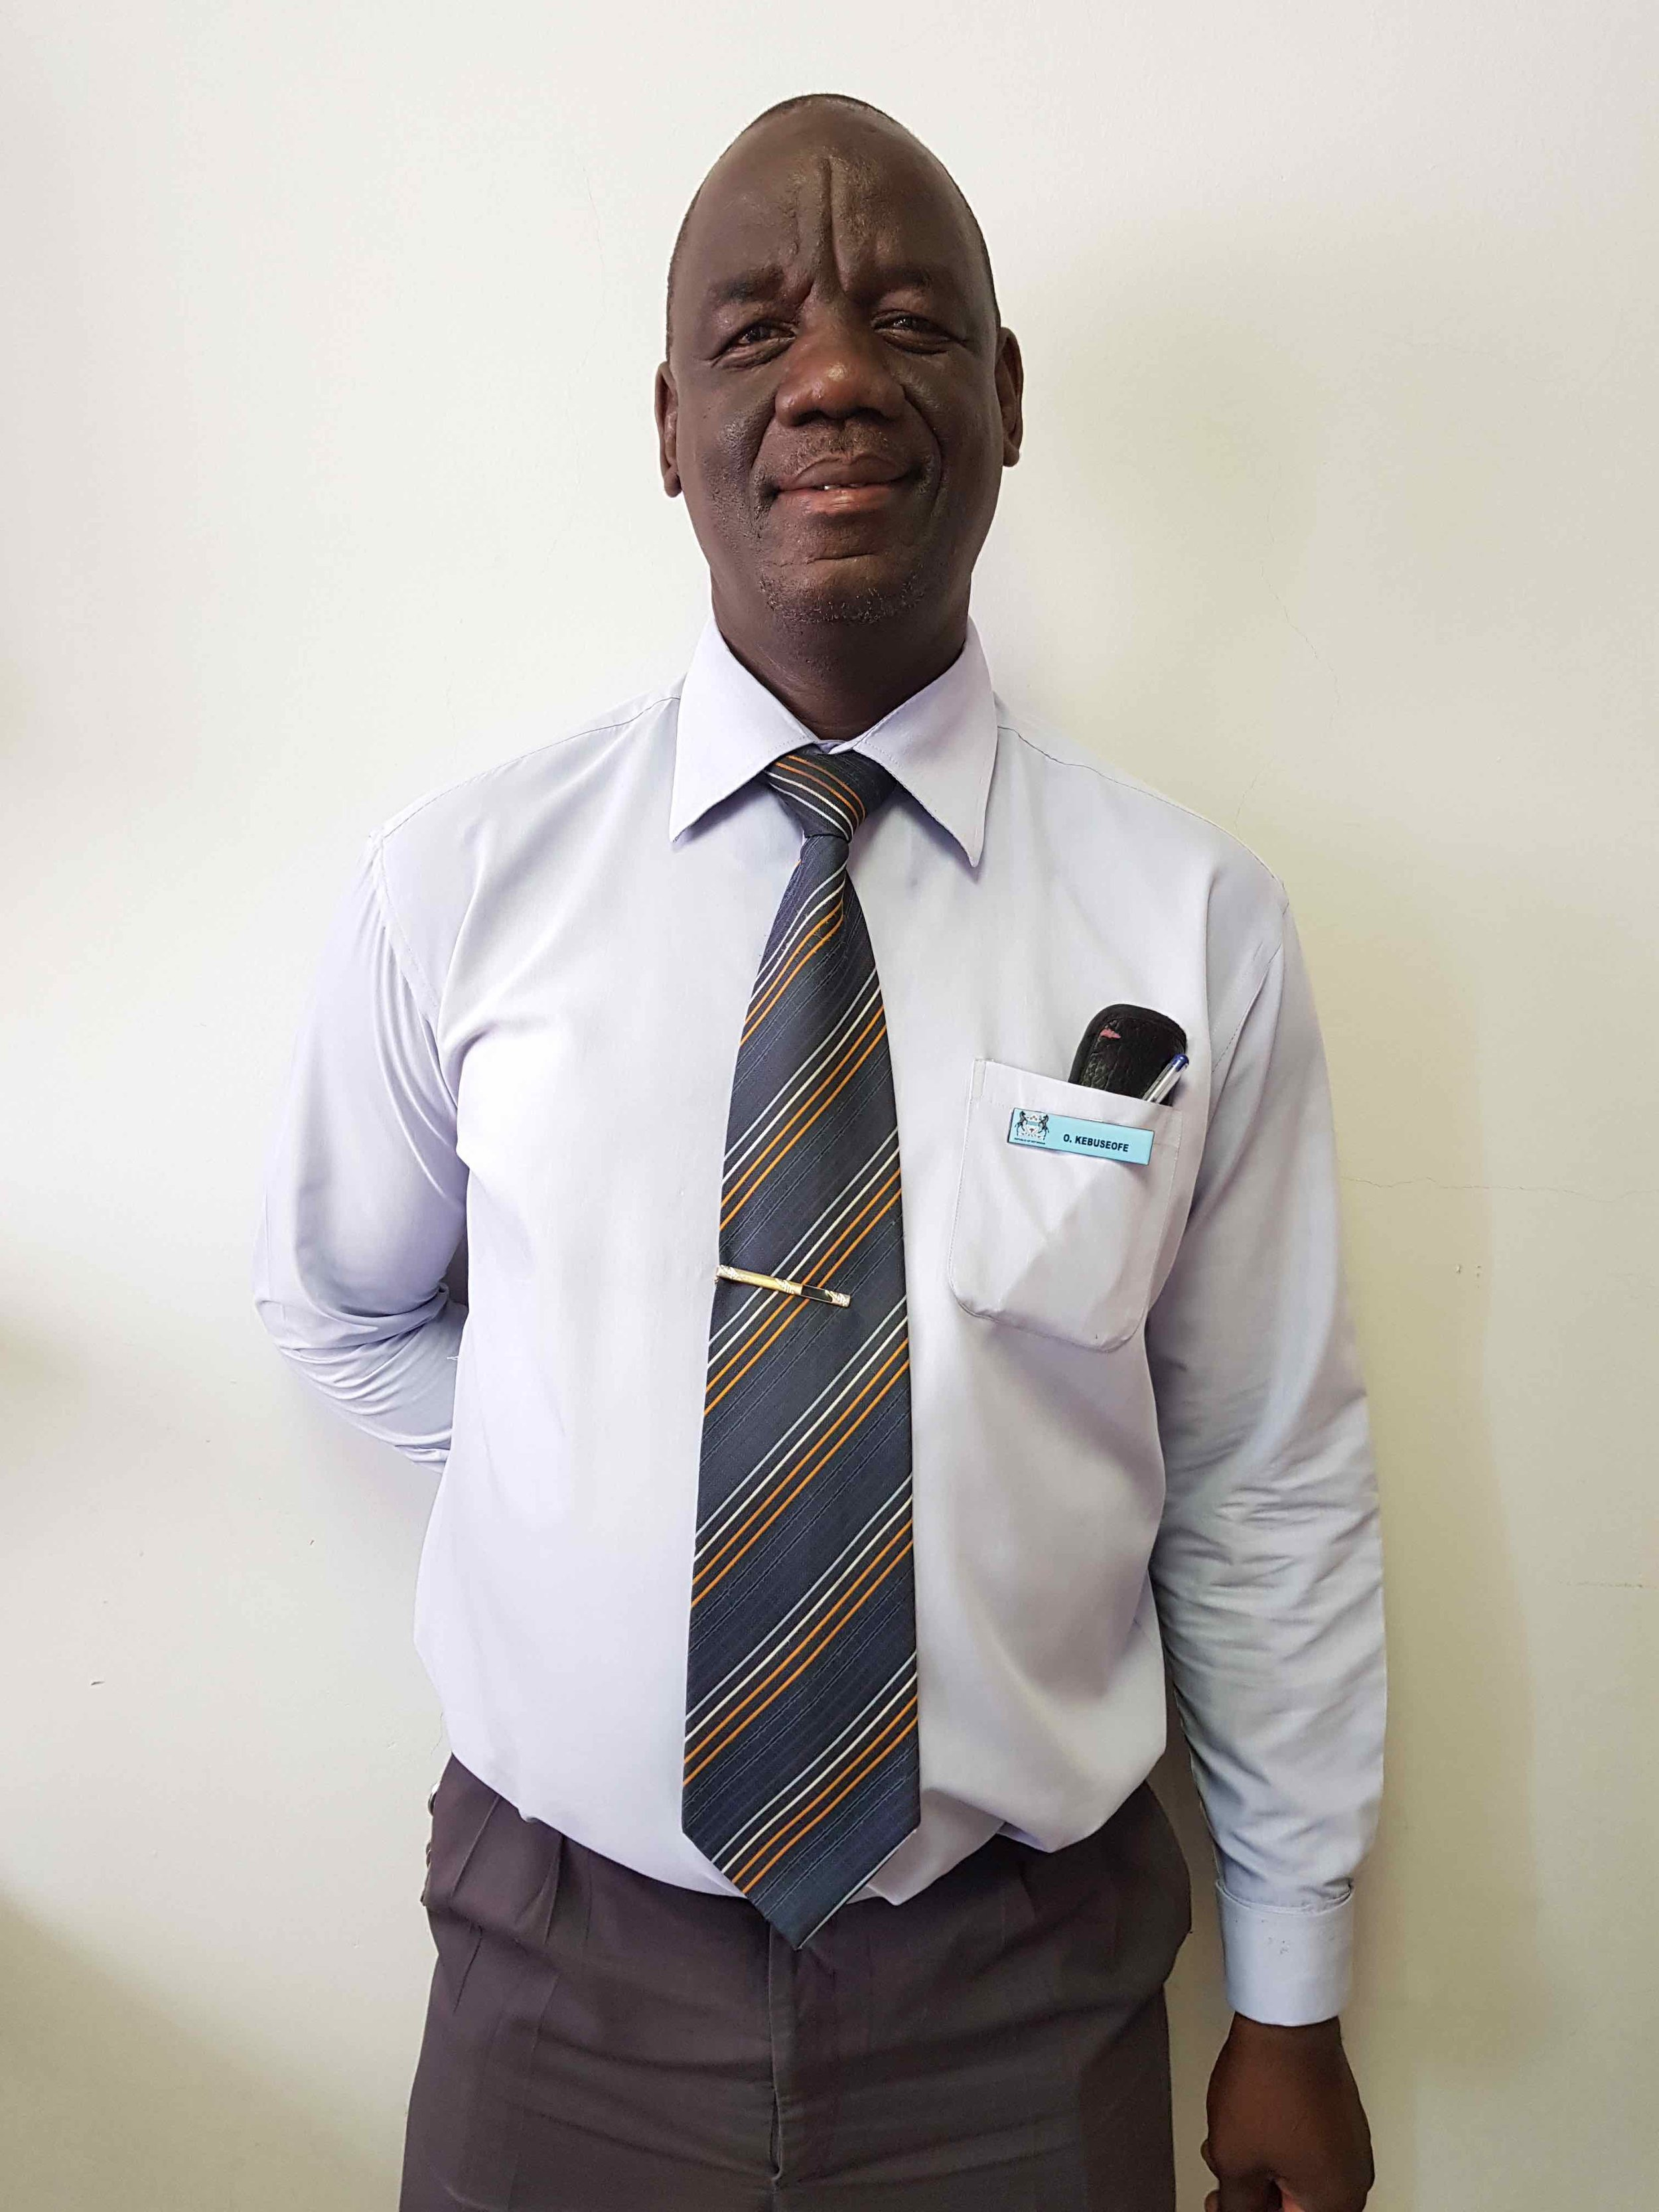 Letlhakeng Mphuthe head of house Kebuseofe -